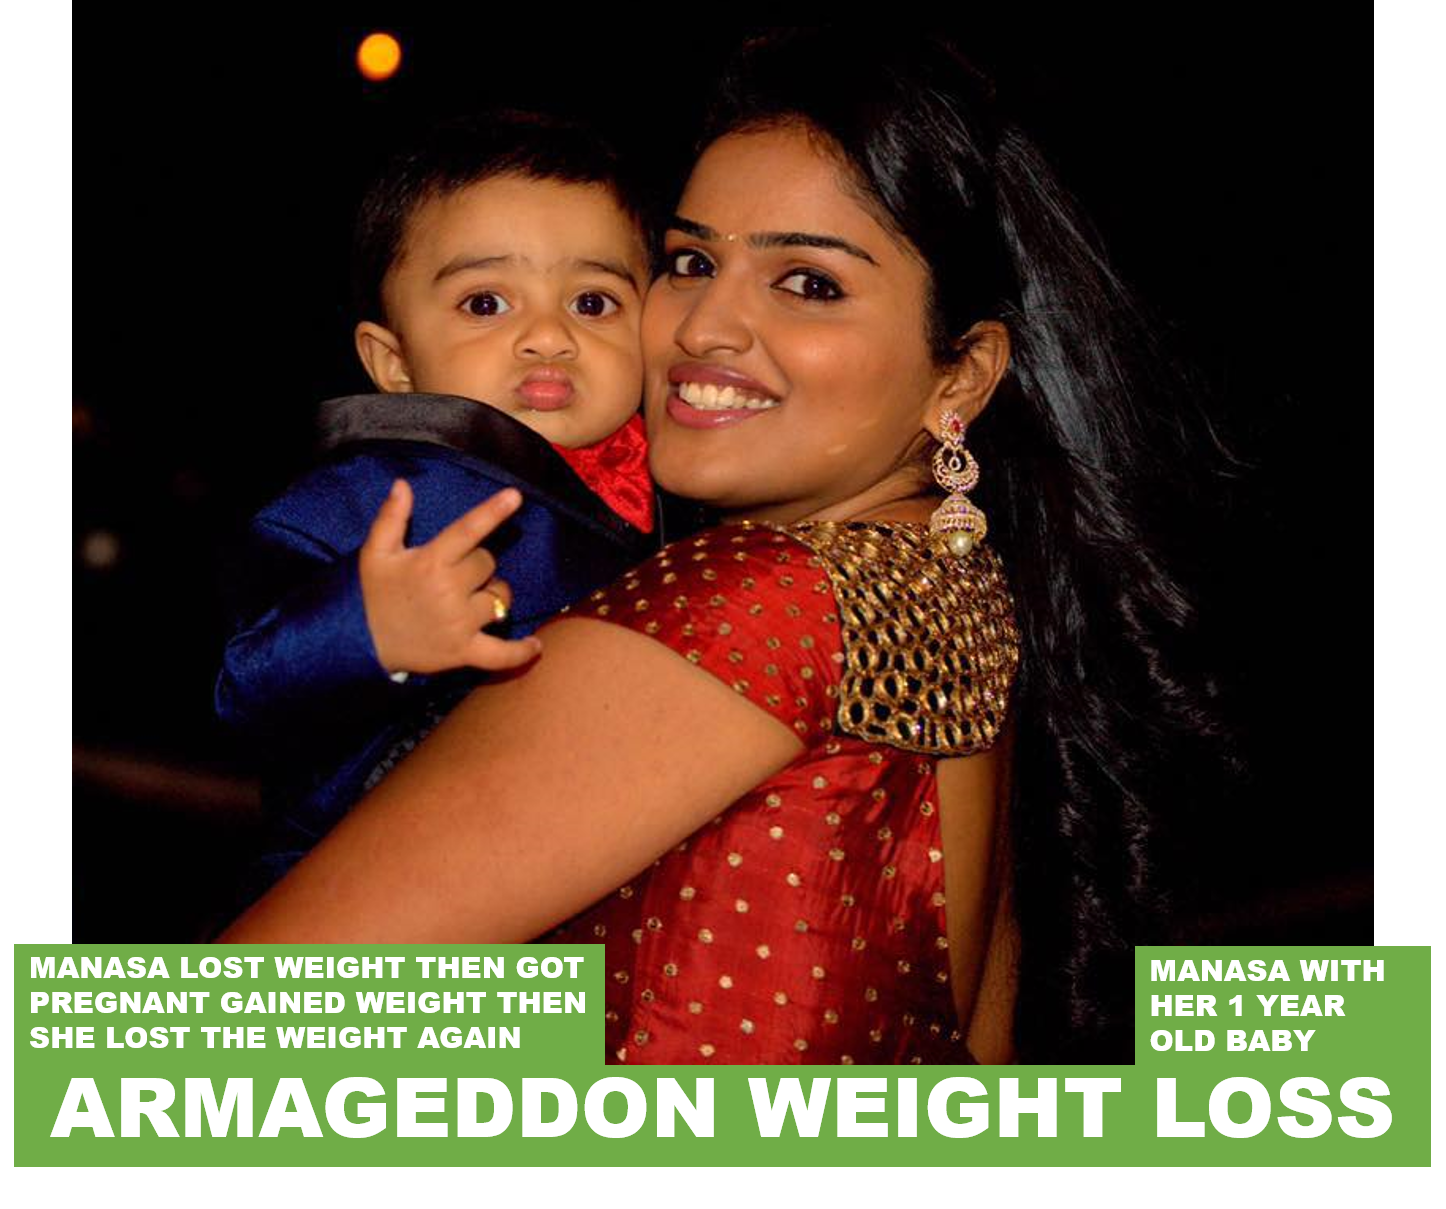 Manasa Reddy - Armageddon Weight Loss DVD Program - Best weight loss DVD for women and men - Best exercise DVD program - post pregnancy weight loss program